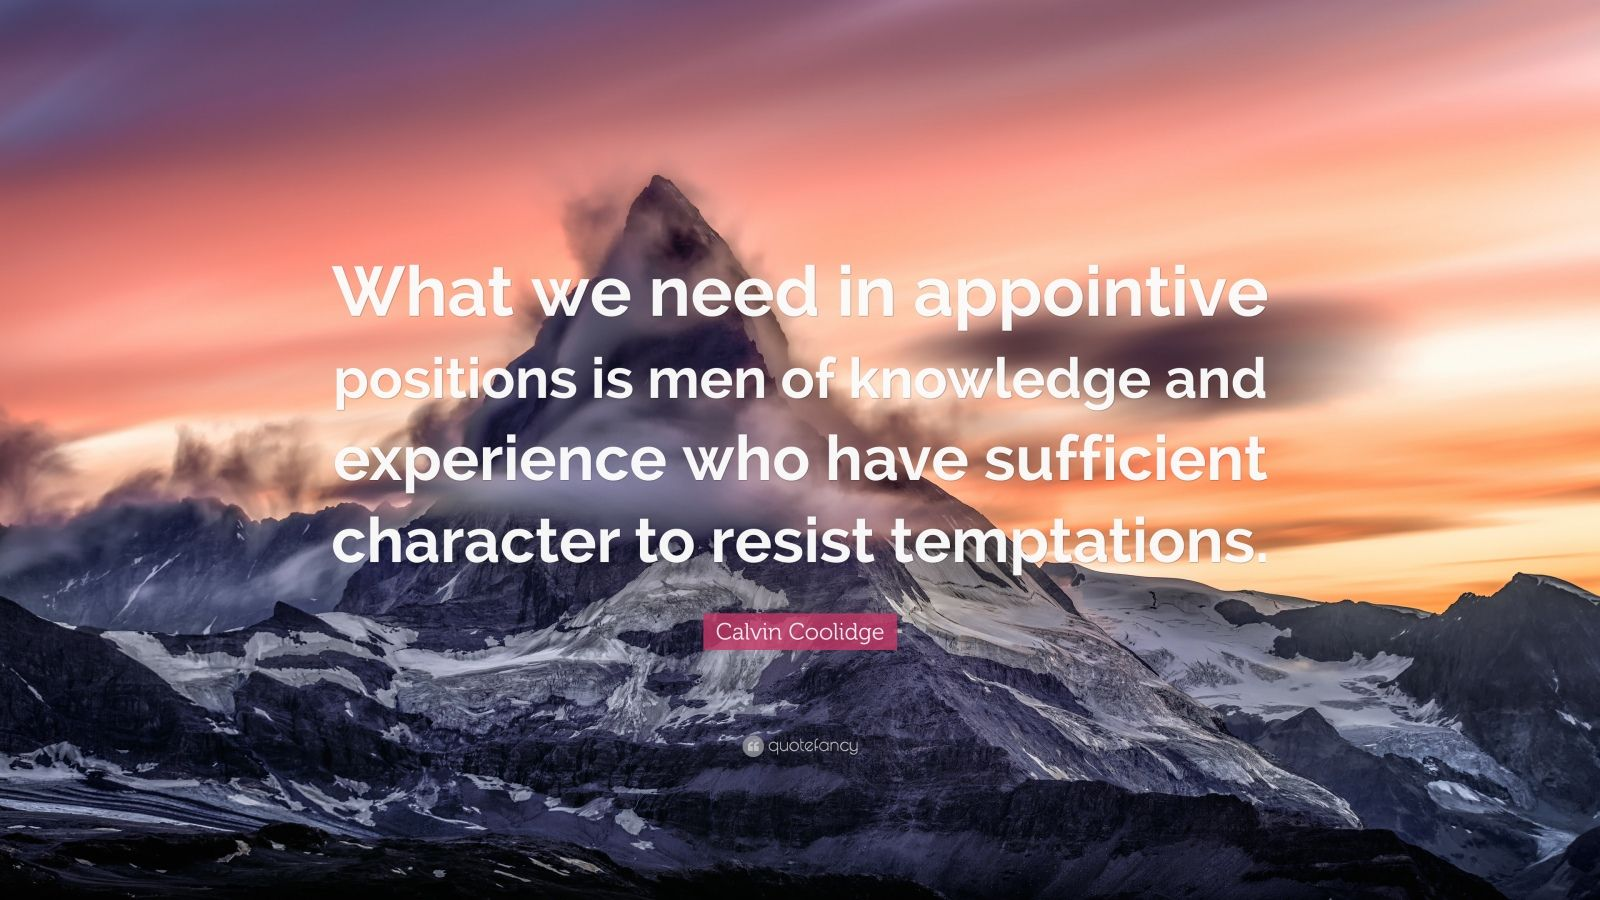 """Calvin Coolidge Quote: """"What we need in appointive positions is men of knowledge and experience who have sufficient character to resist temptations."""""""